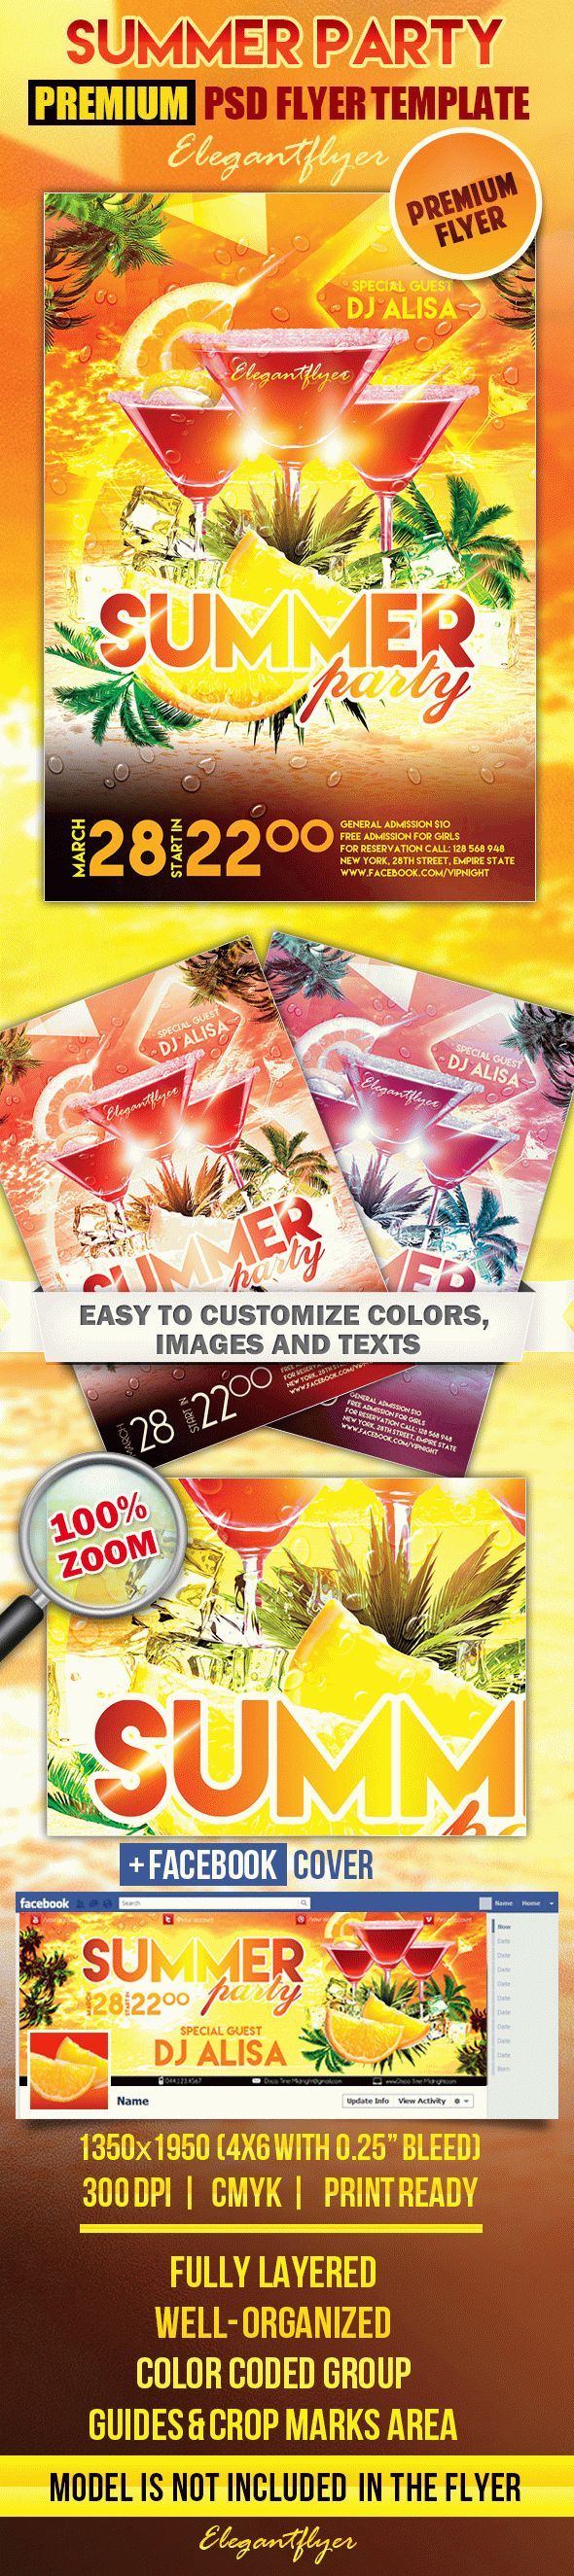 Summer Party 3 – PSD Flyer Templates + Facebook Cover